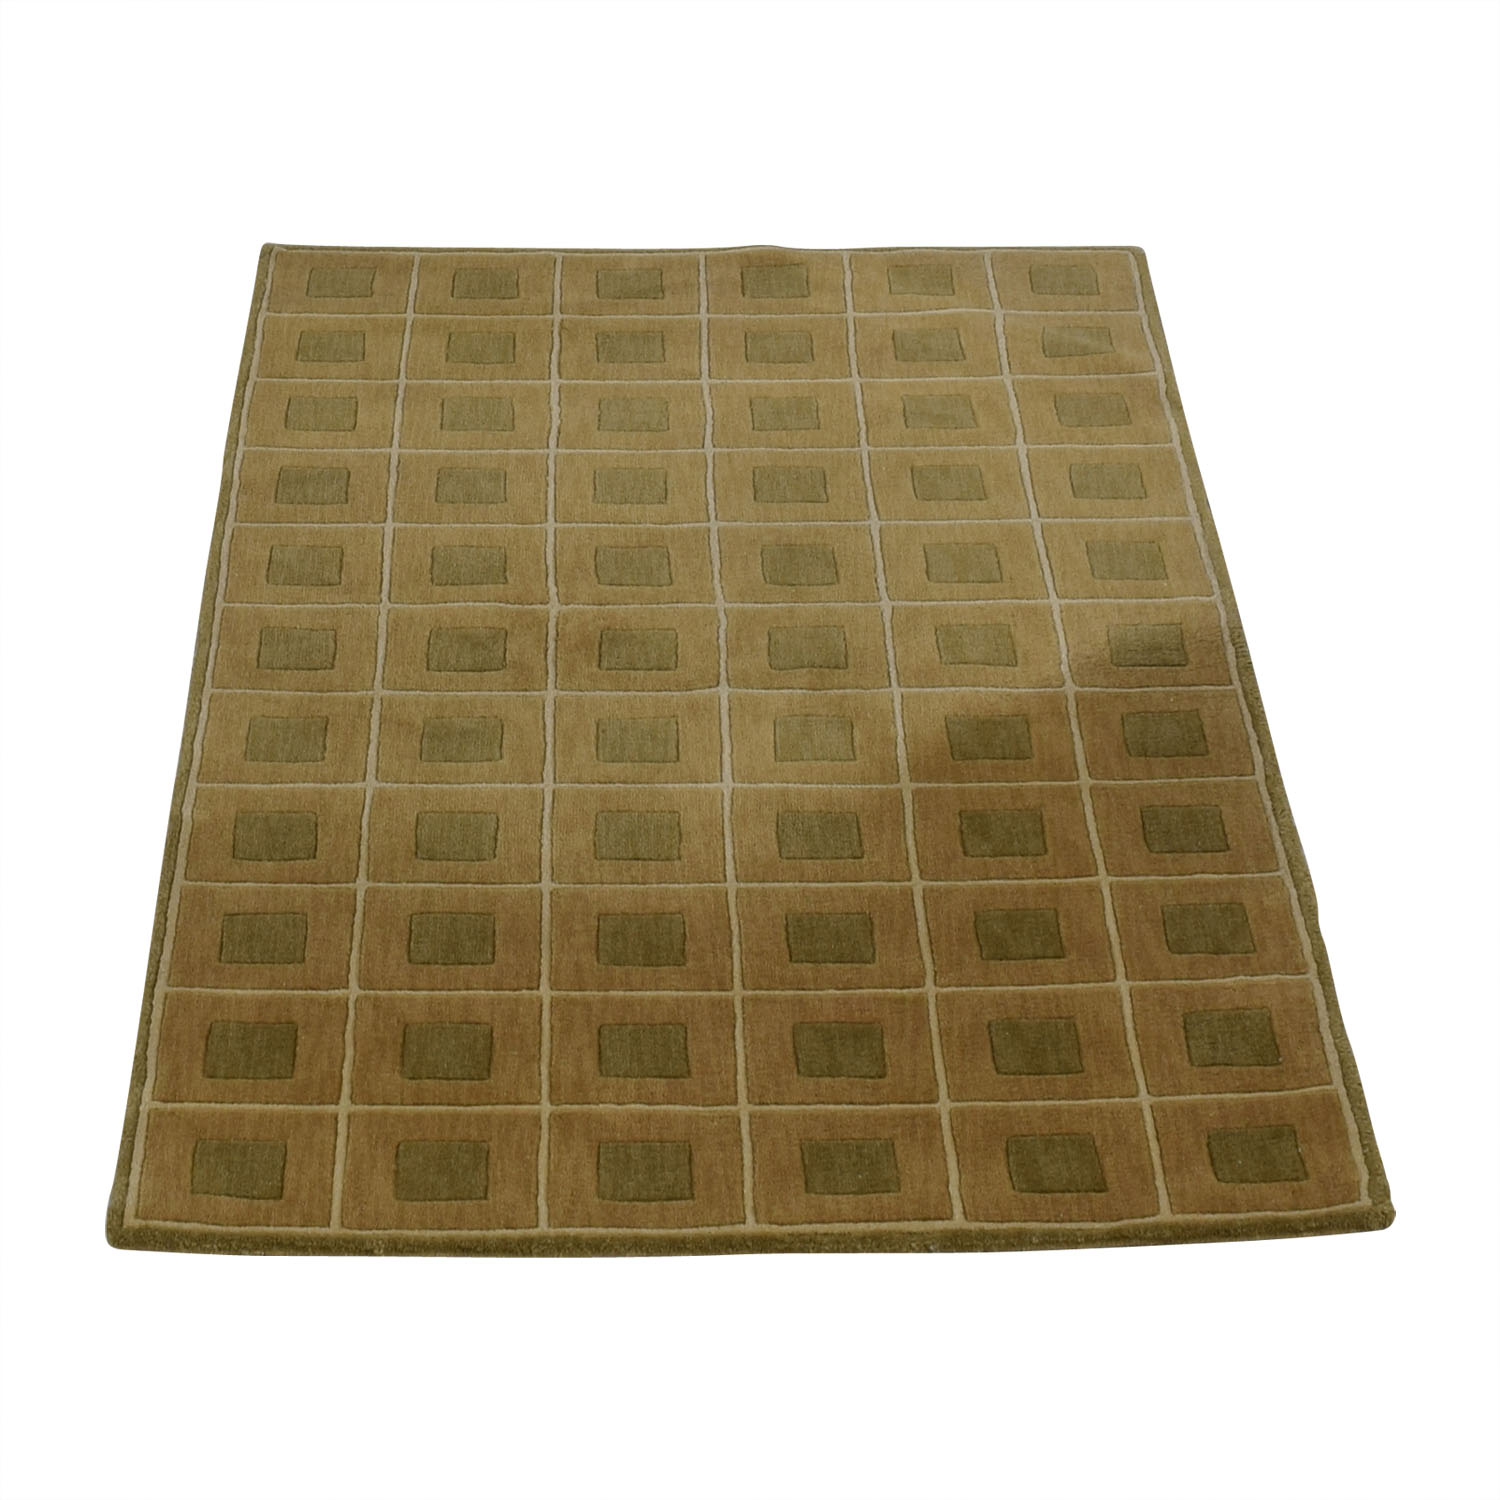 ABC Carpet & Home ABC Carpet & Home Runner Rug dimensions